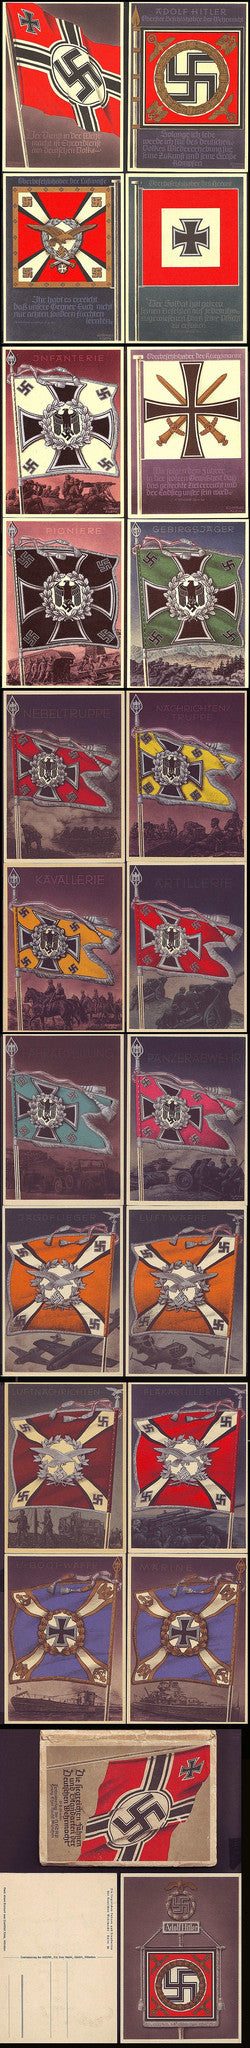 Wehrmacht Flags and Standarts-Complete set of 21 postcards, with container. Mint+. Extremely Rare. - J.V. Bond Company